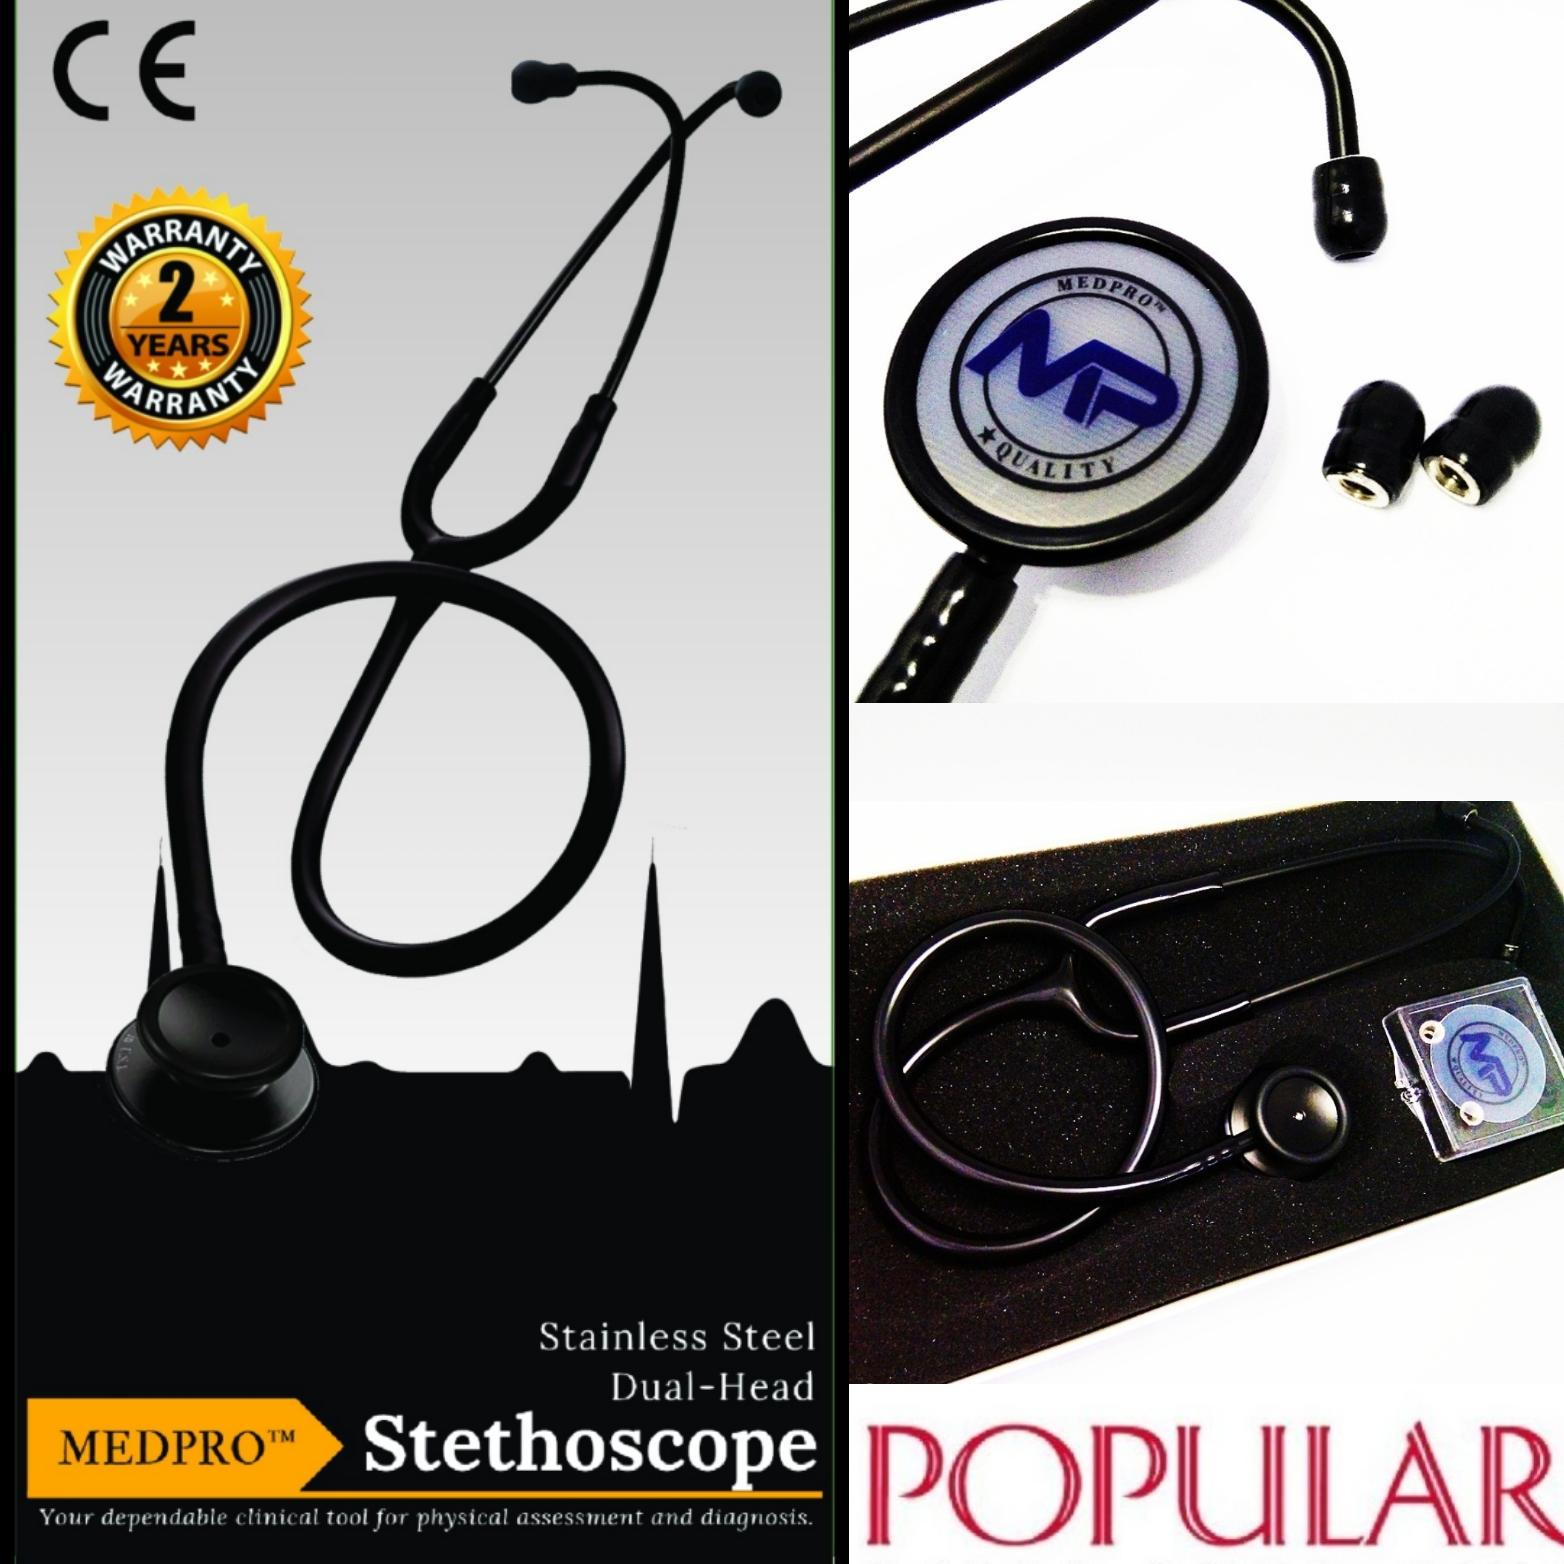 Medpro New Limited Edition: Light Weight Full Black Medical Dual-Head Stethoscope - Ce Approved For Medical Use / Nurses / Caregivers Ideal For Nurses/ Caregivers To Assess Physical Health By Medprosg Group.